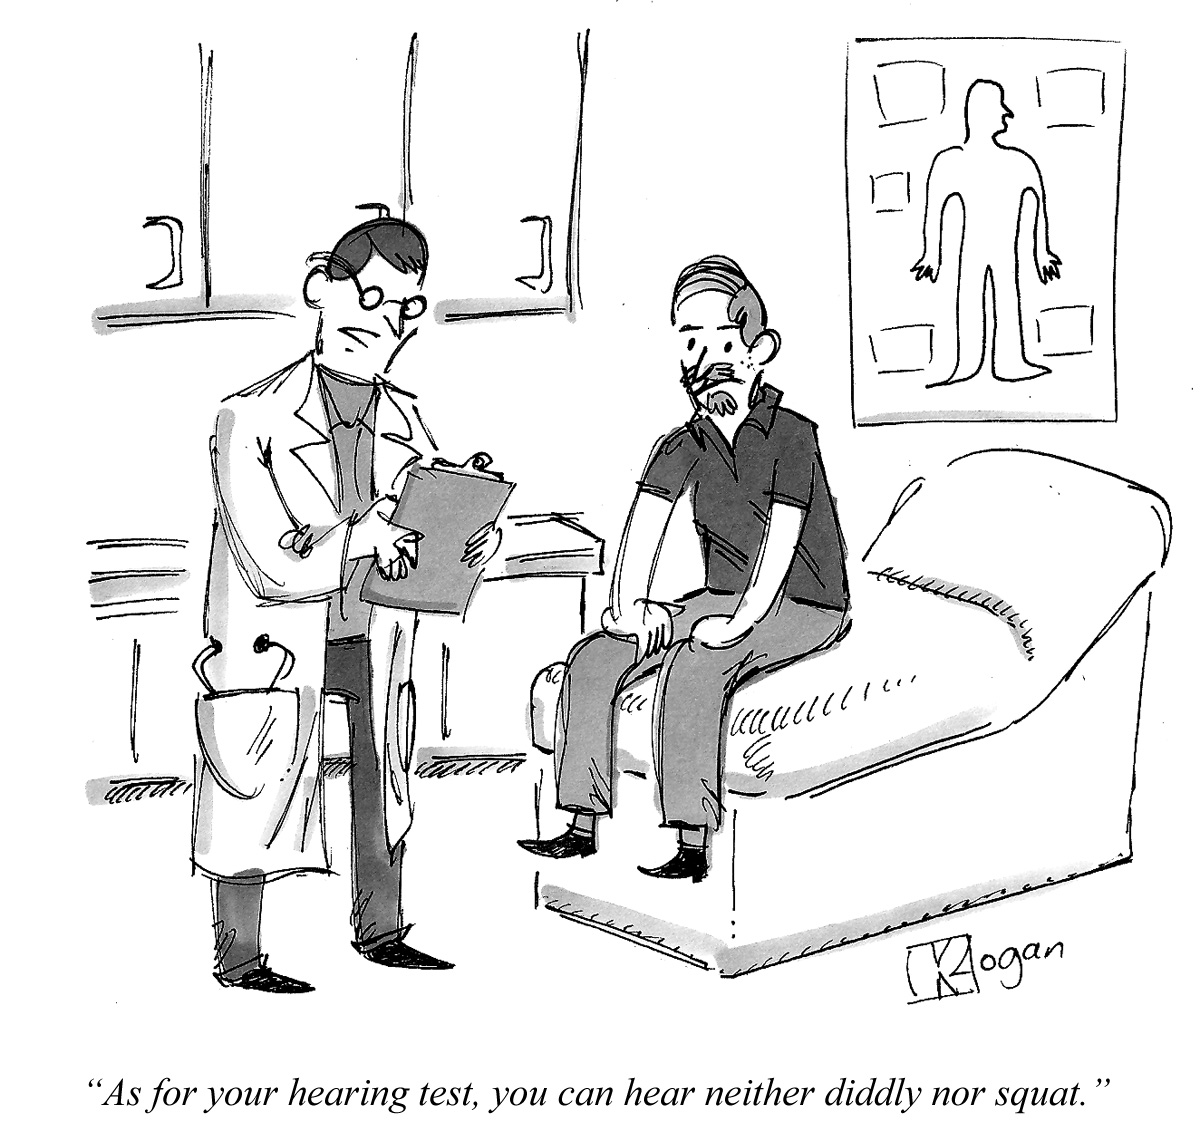 As for your hearing test, you can hear neither diddly nor squat.